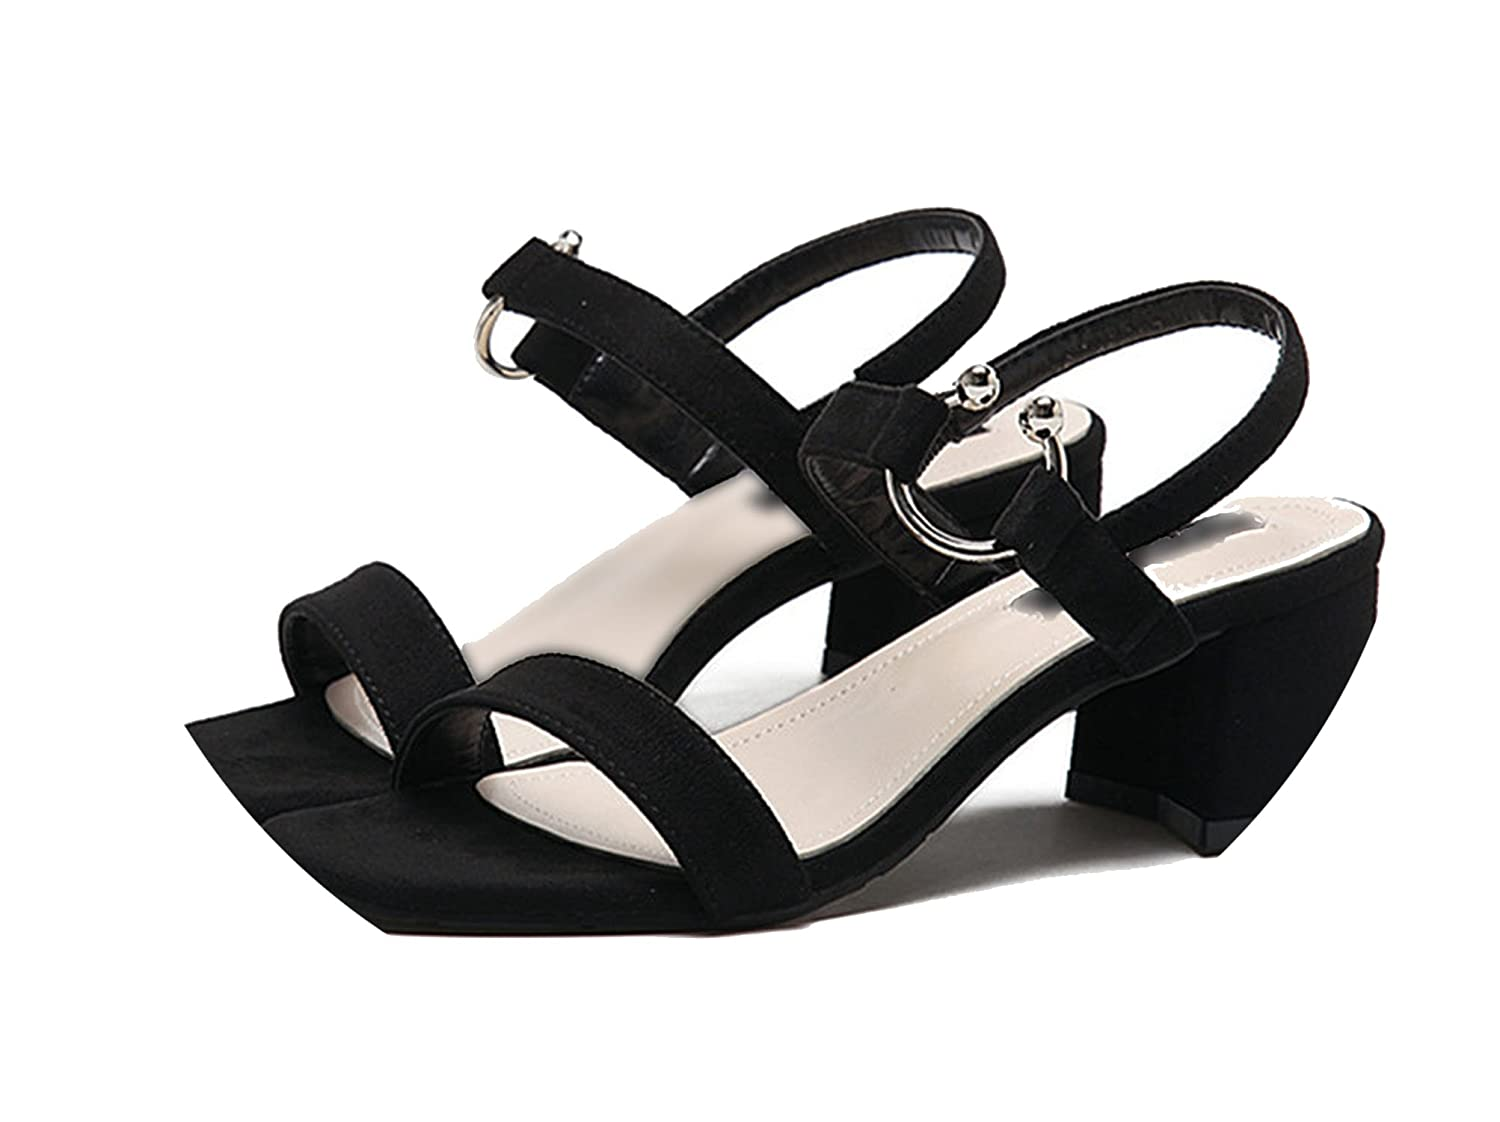 Lovely-Shop Summer Women Sandals Concise Metal Buckle Square high Heels Basic Casual Flock Shoes Woman Sandalias